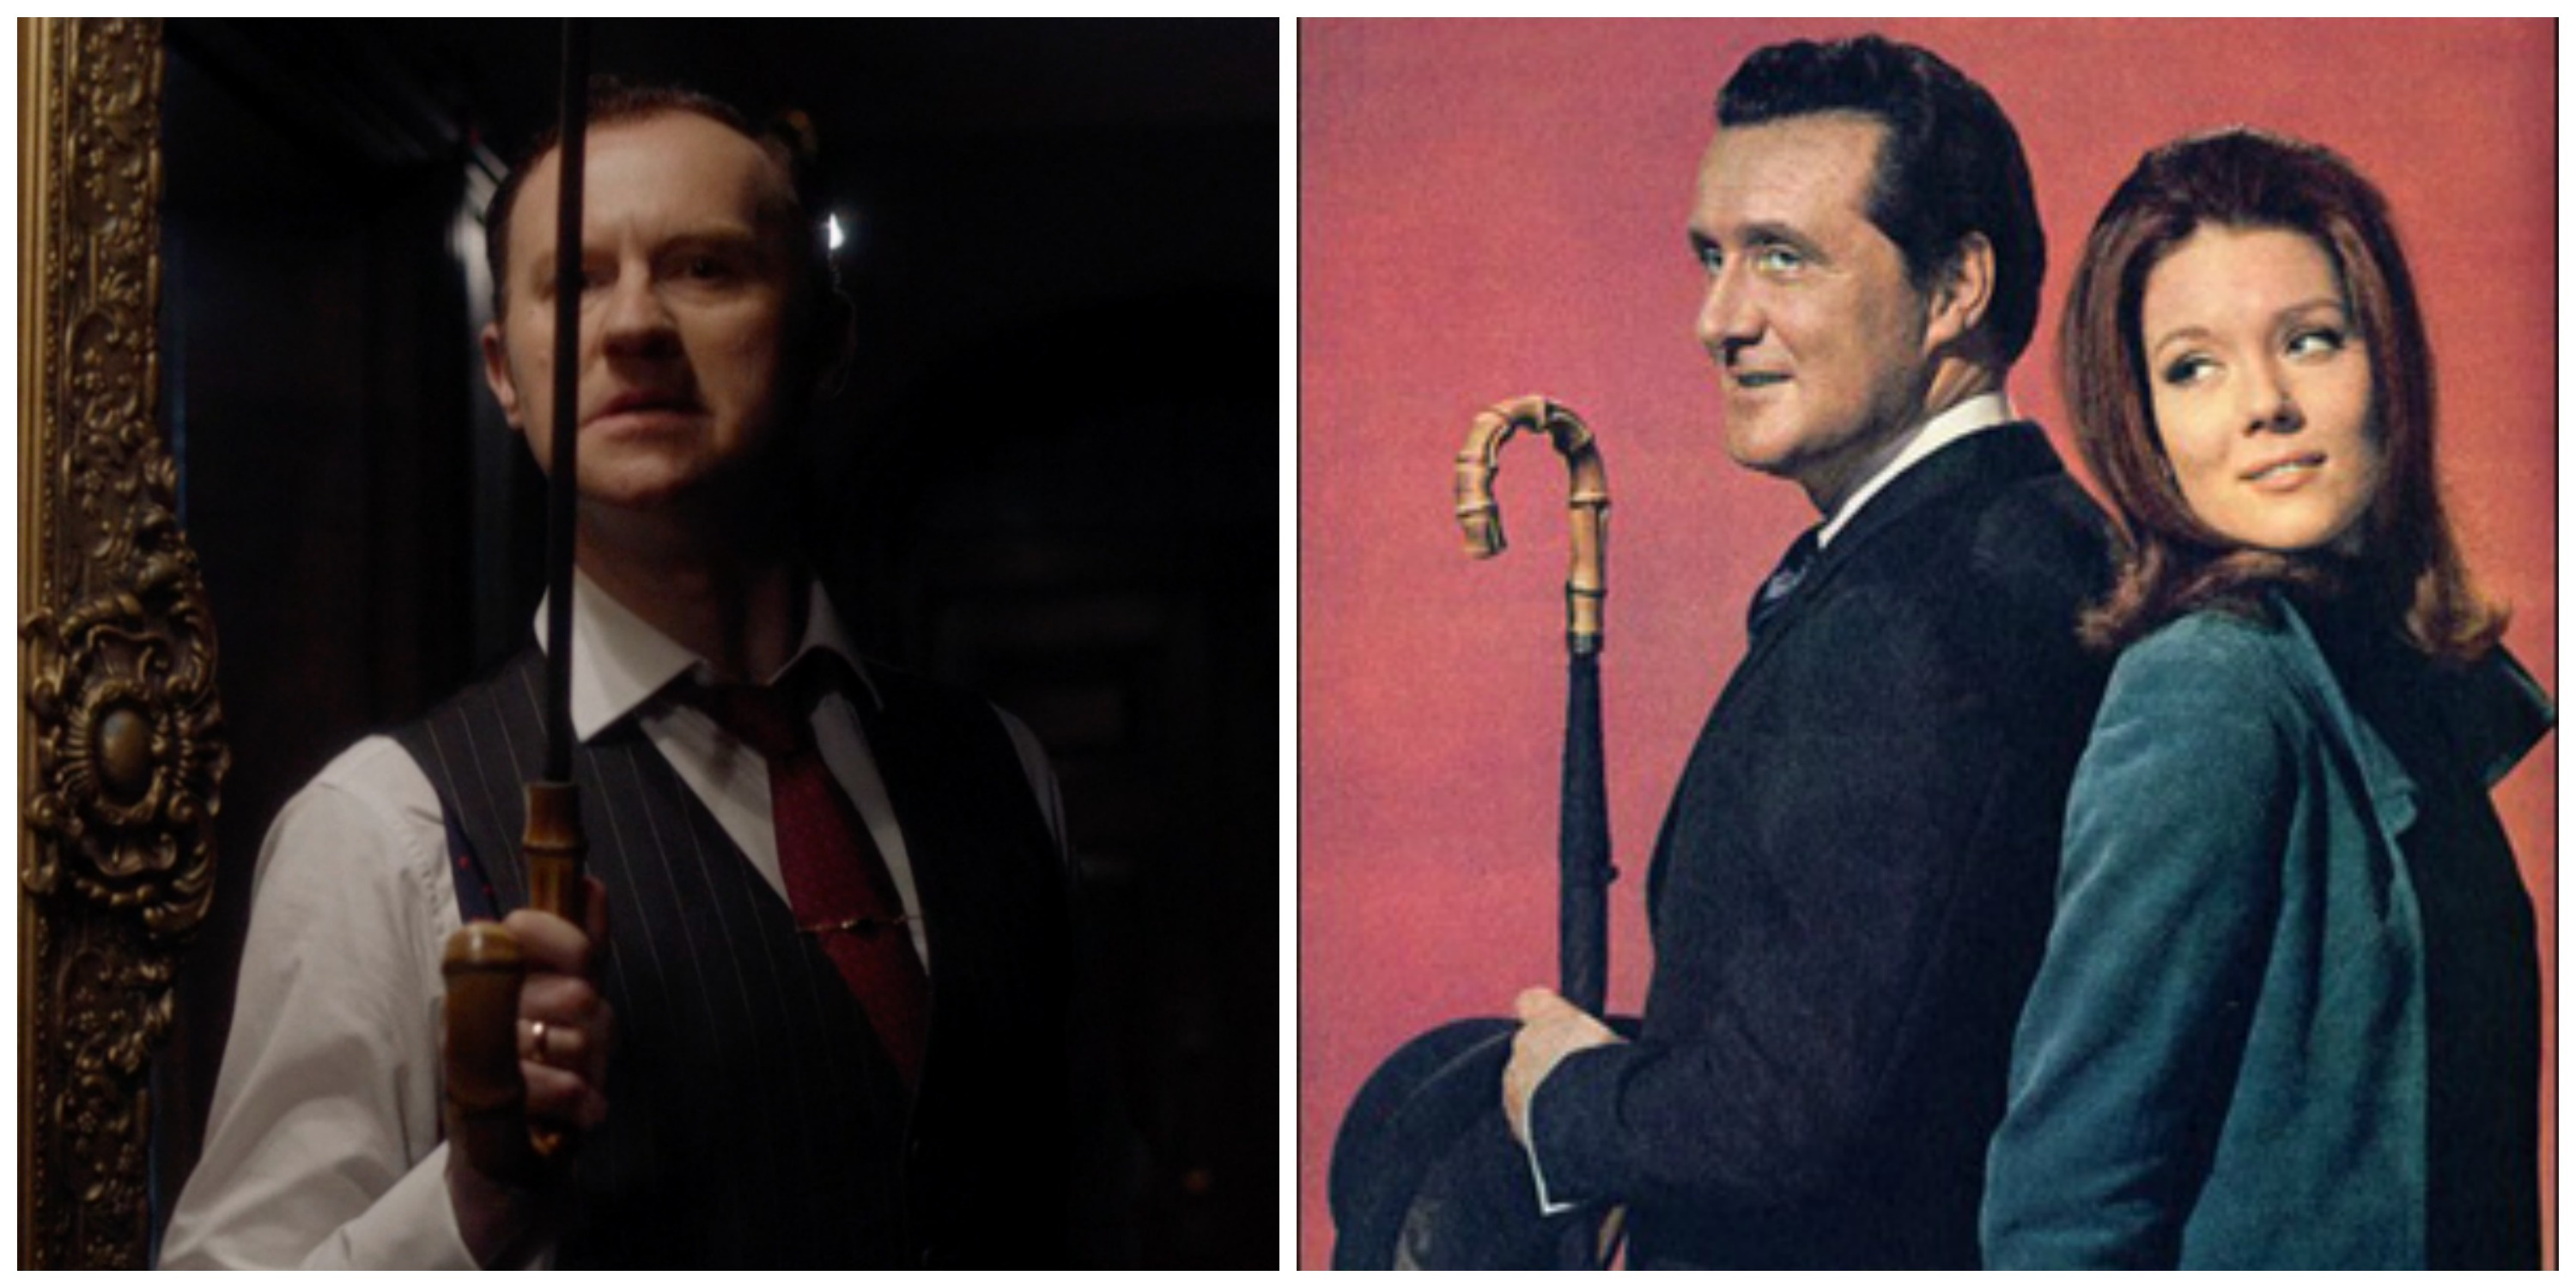 LEFT: Mycroft's sword. RIGHT: The original Avengers.